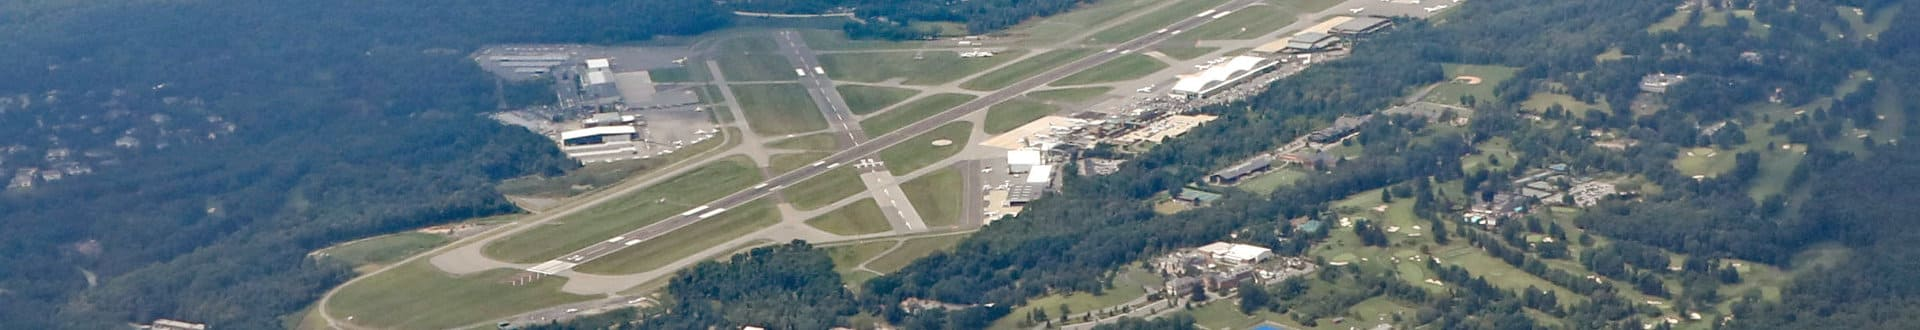 Westchester Airport hpn